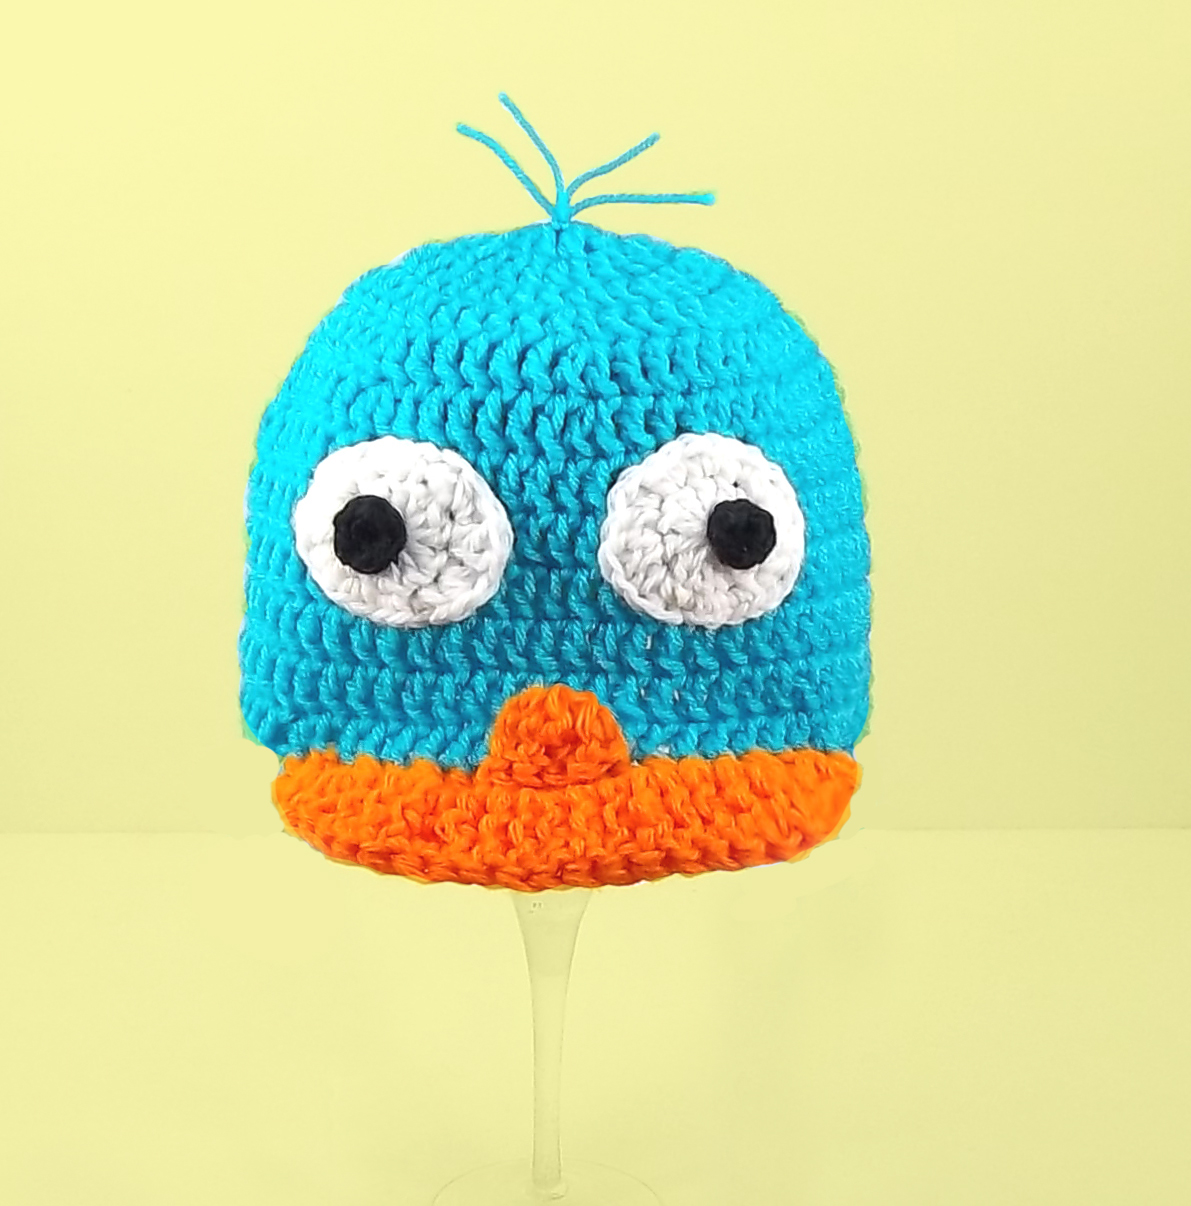 Perry the Platypus Hat from Phineas and Ferb